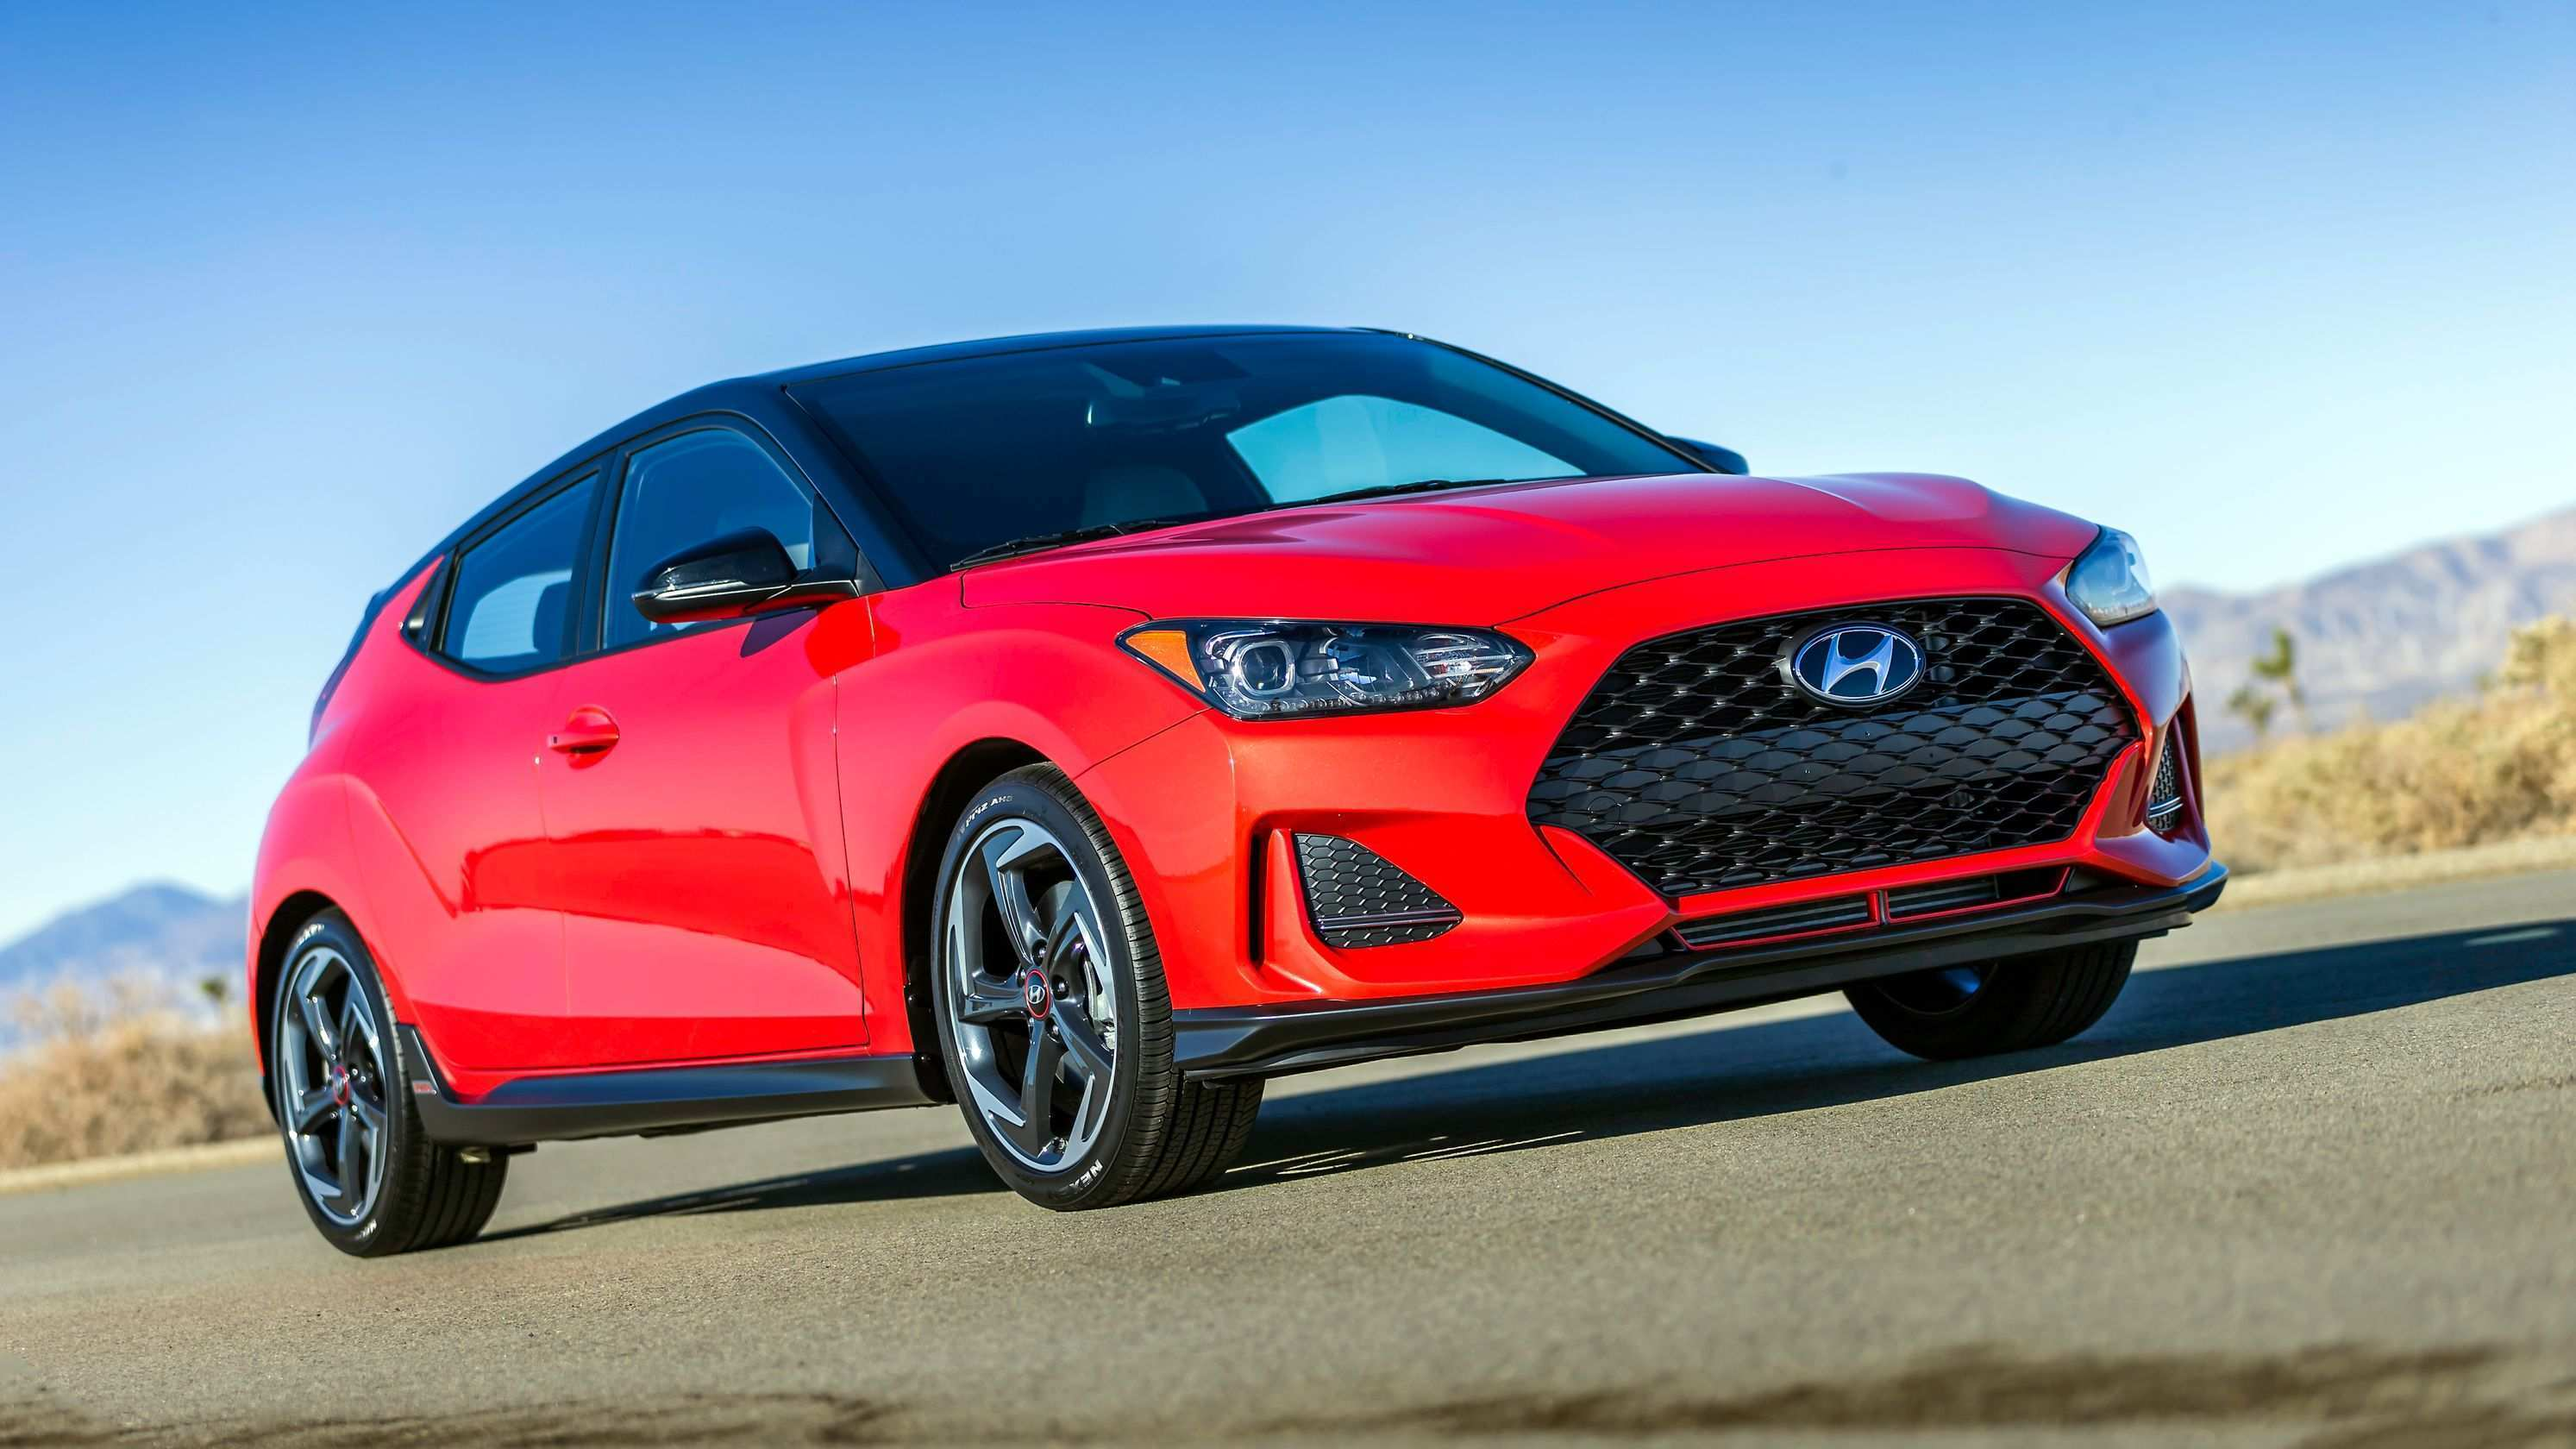 41 The 2019 Hyundai Veloster Turbo Pictures with 2019 Hyundai Veloster Turbo